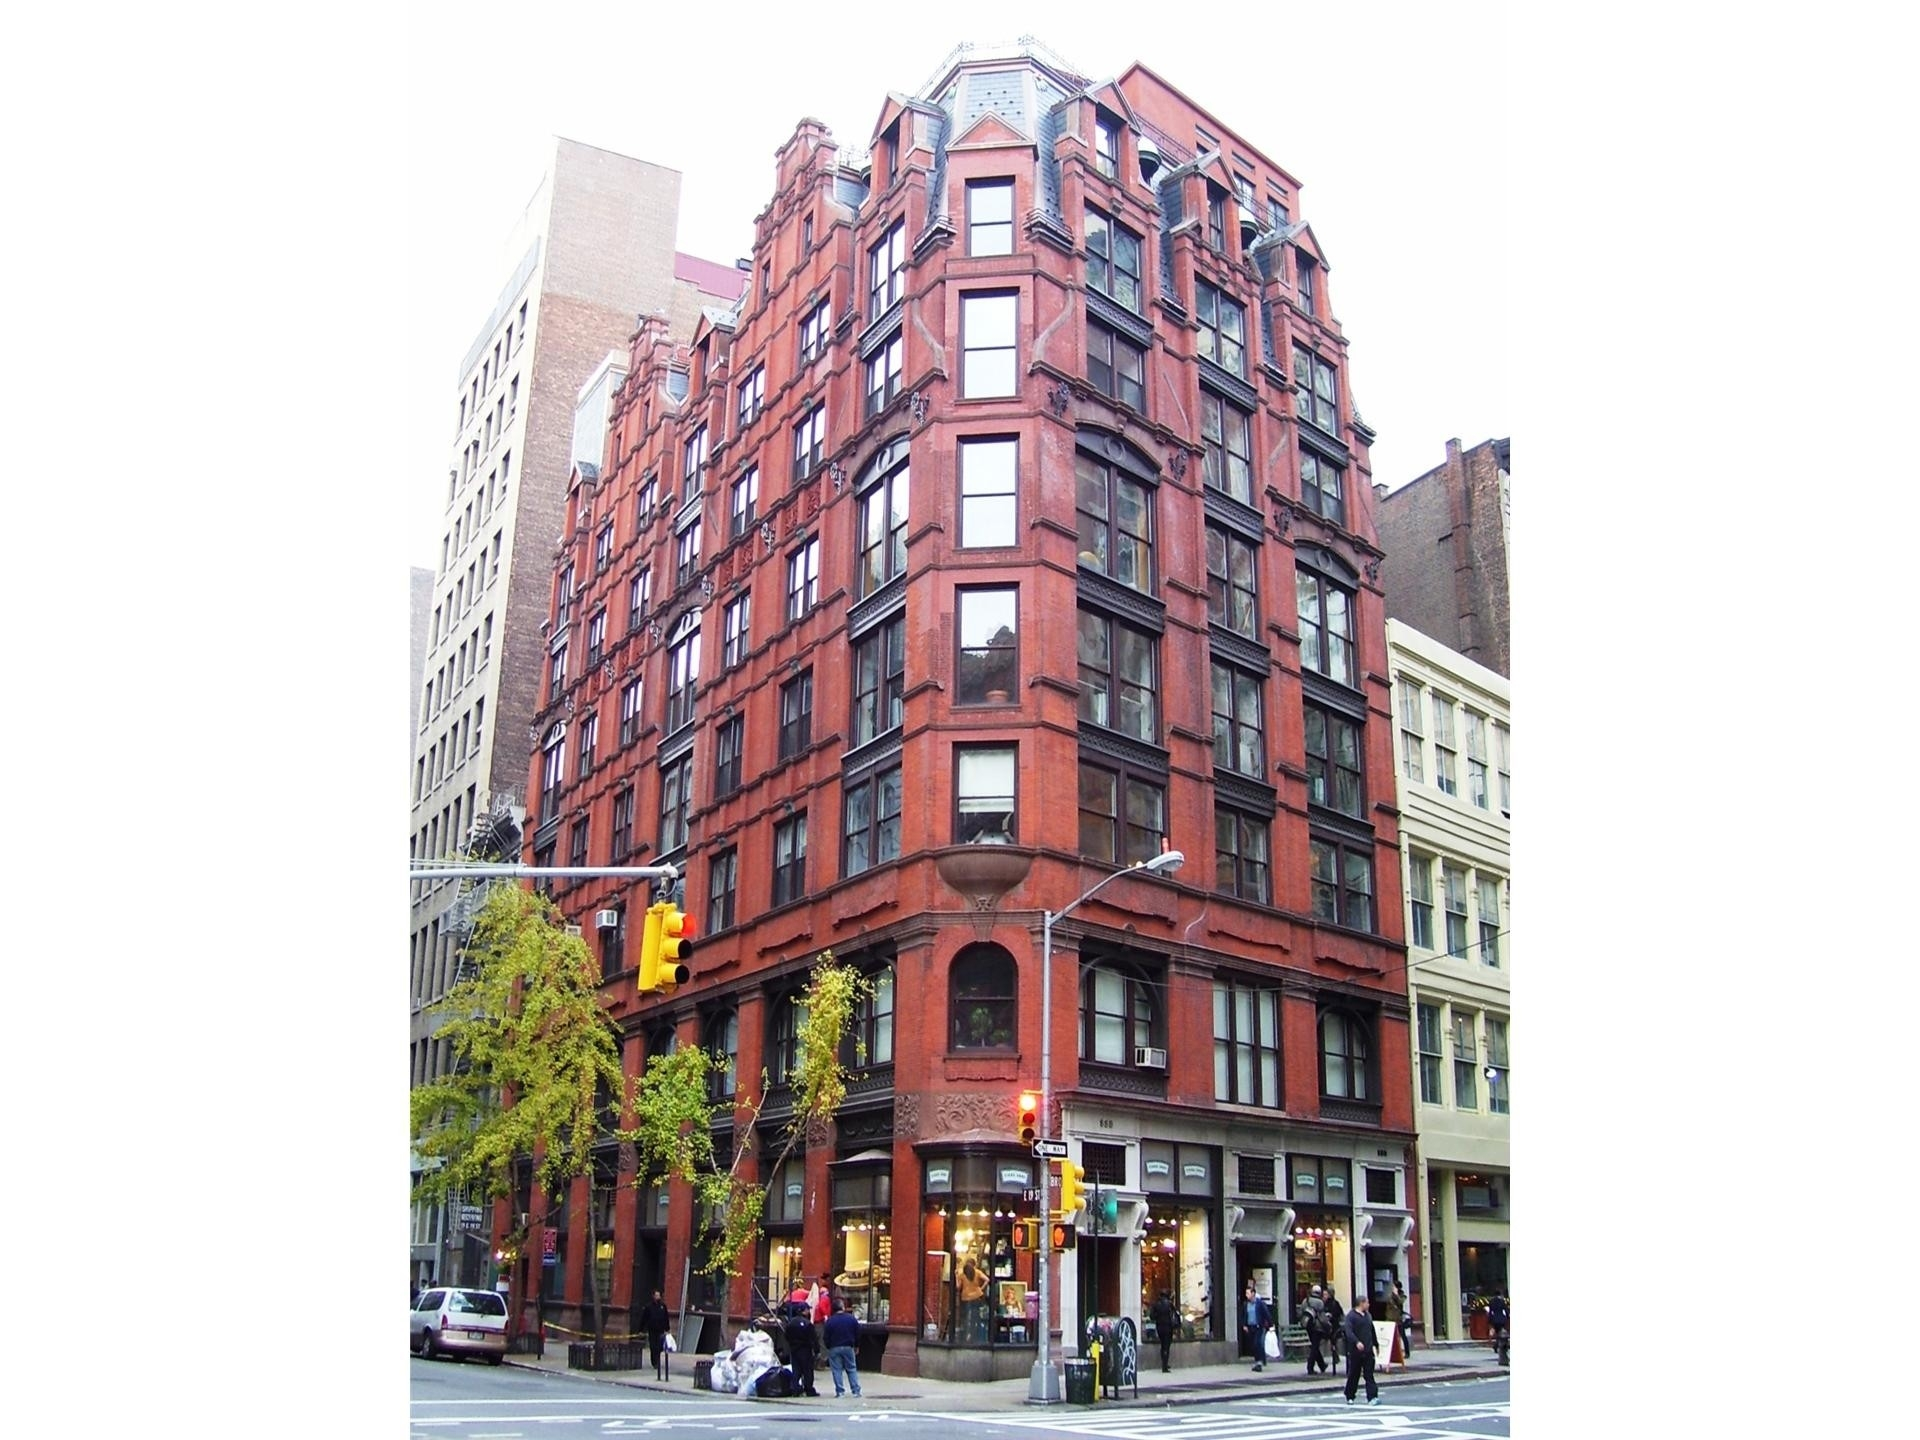 1. THE GORHAM edificio en 889 Broadway, Flatiron District, New York, NY